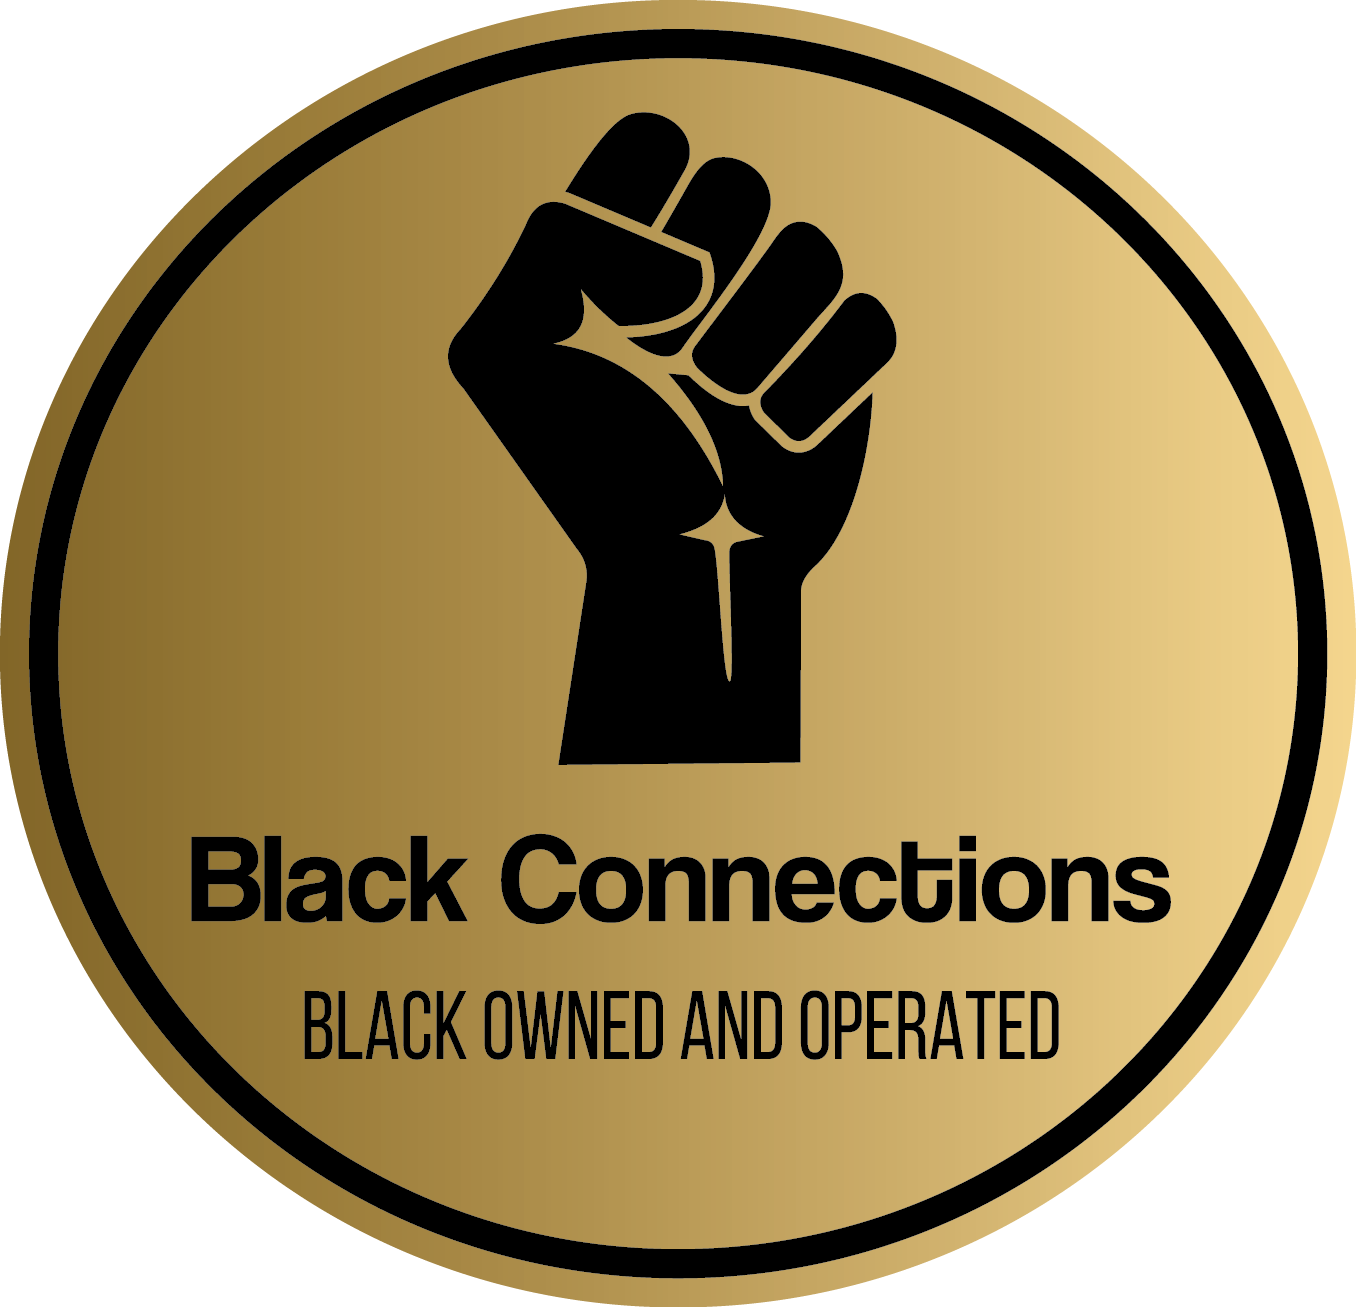 Black Connections